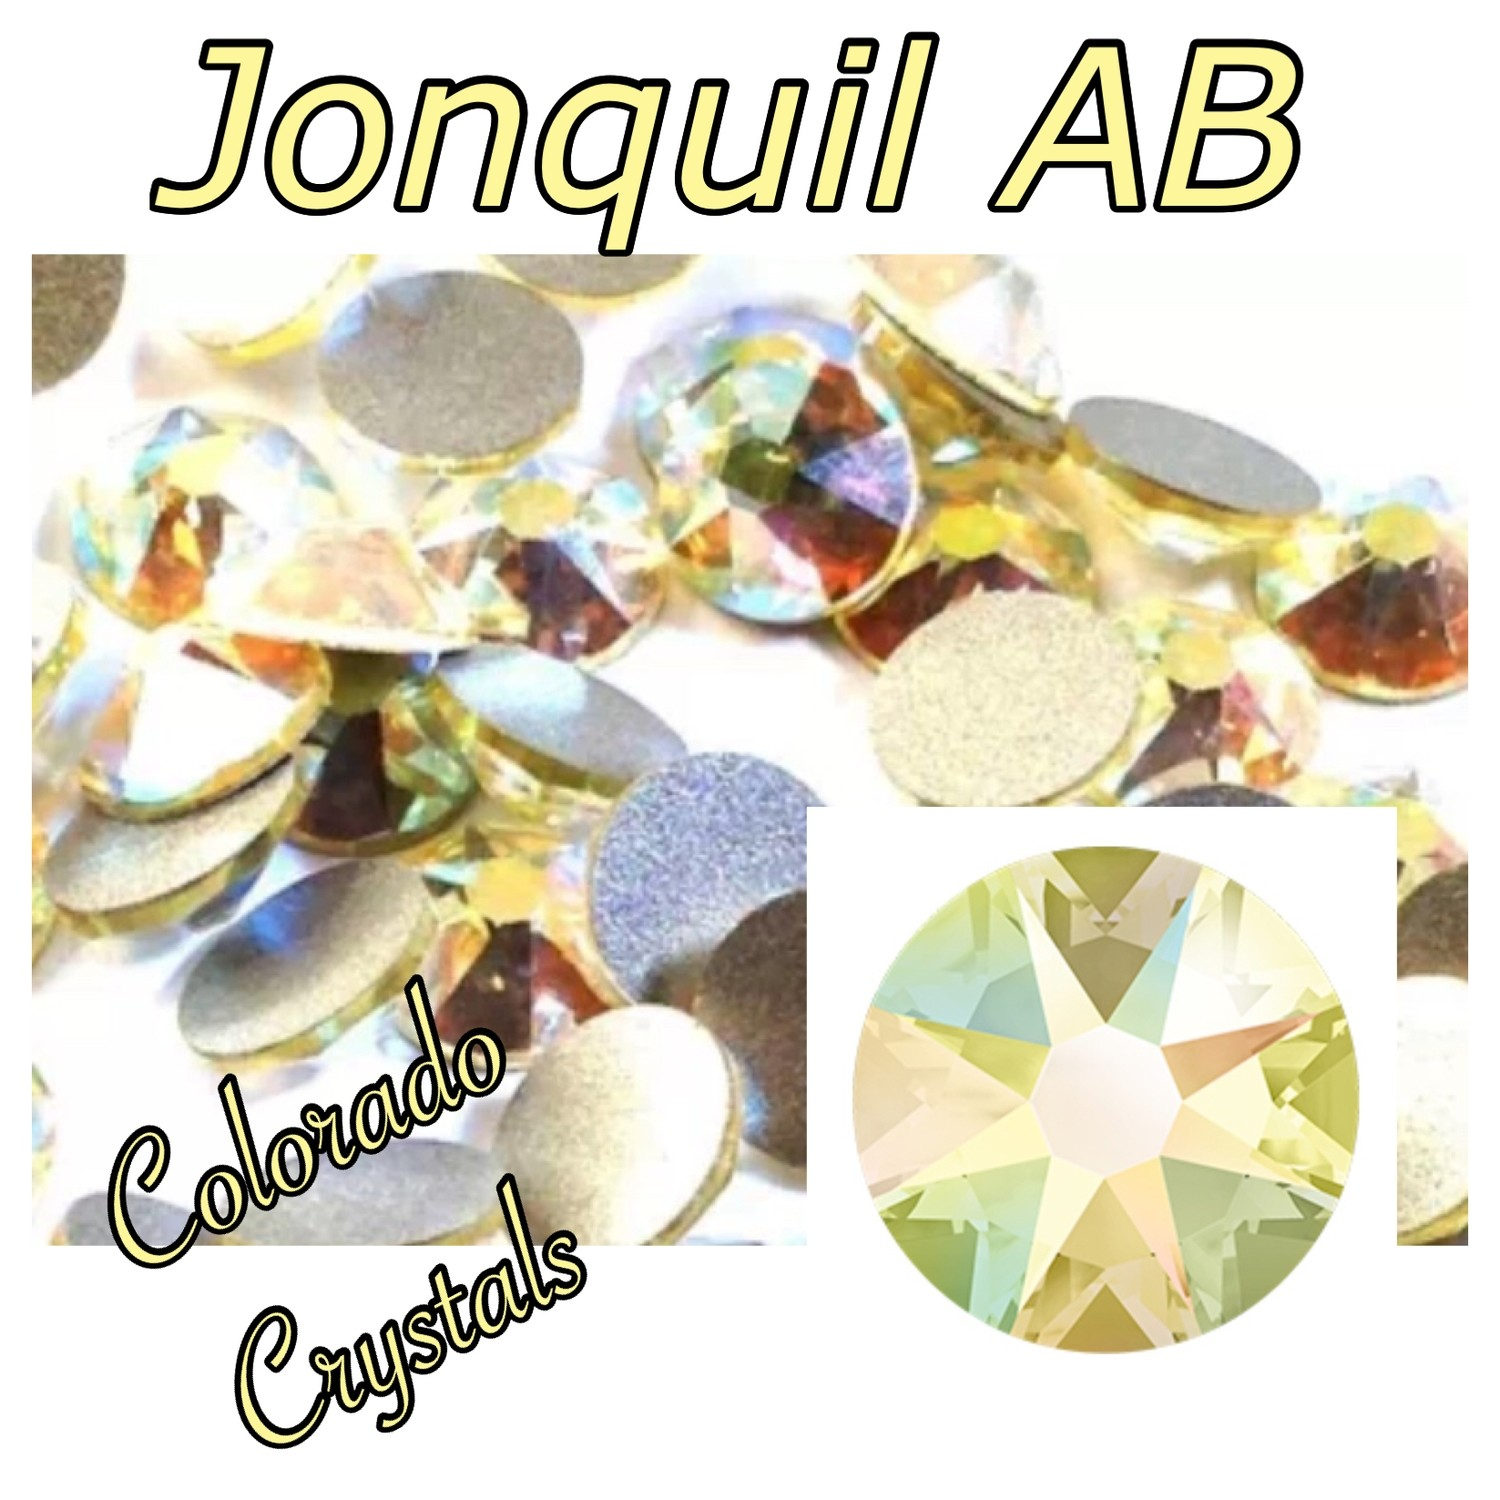 Jonquil AB 5ss 2058